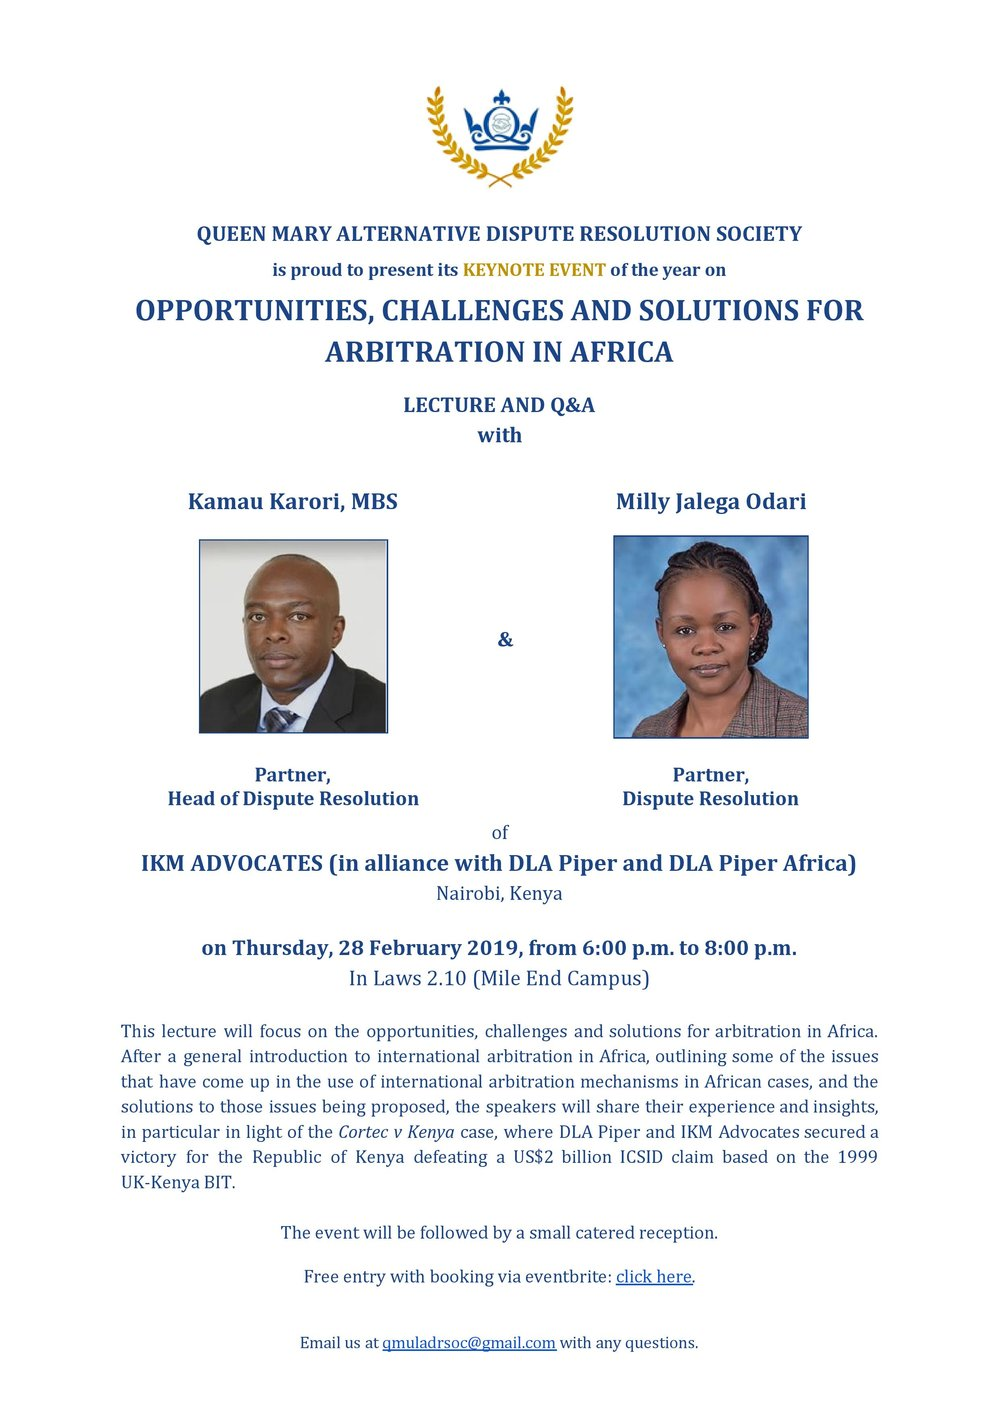 Arbitration in Africa (28 February)-page-001.jpg